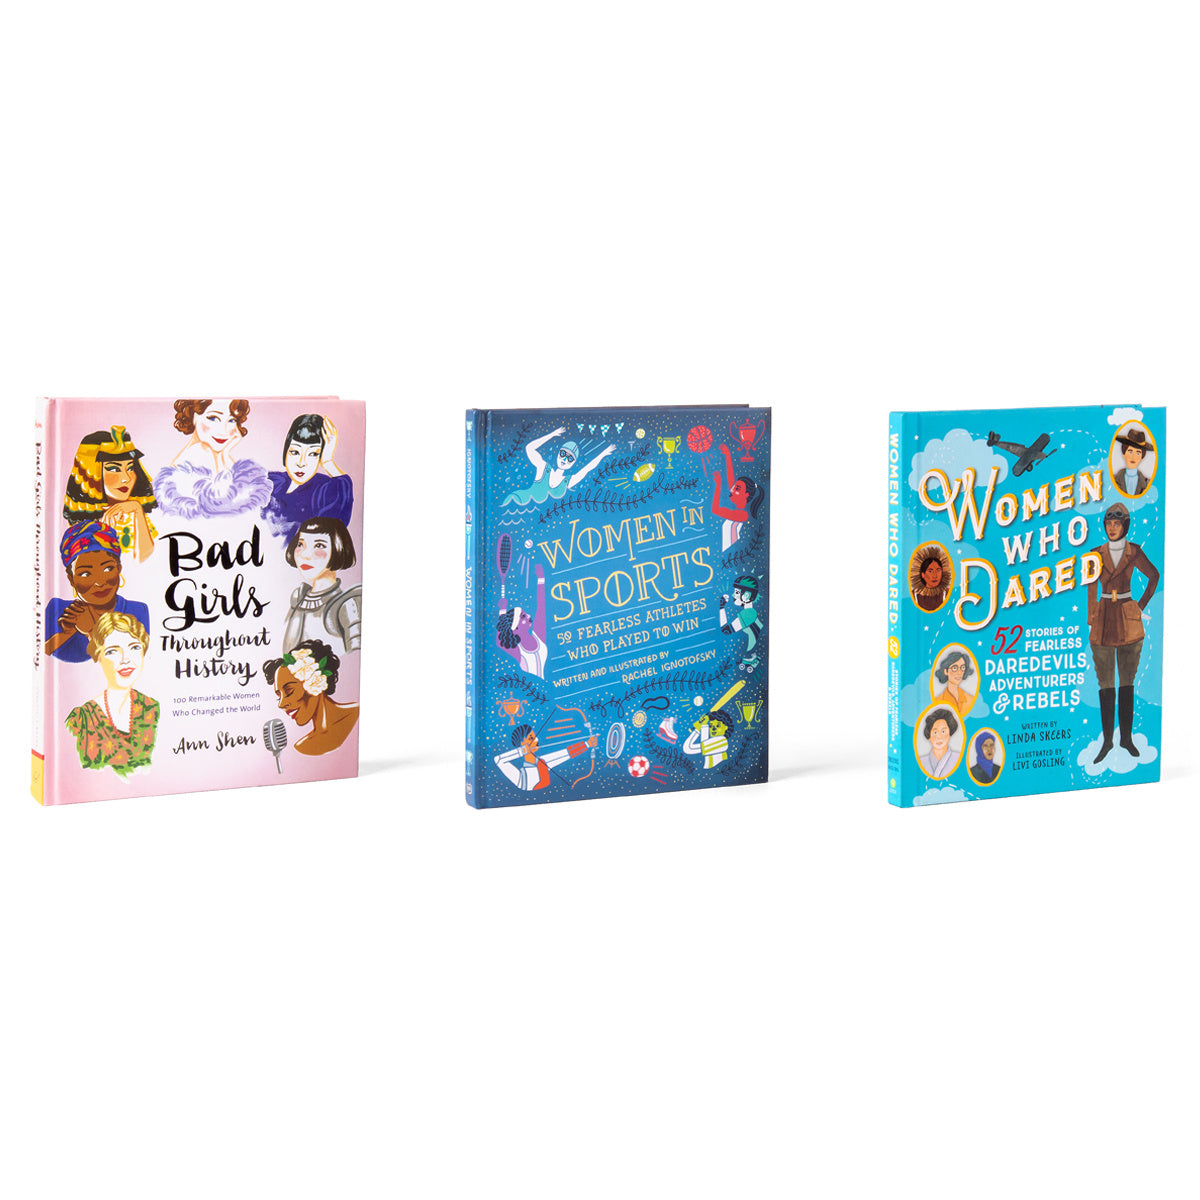 #girlsrule Book Set